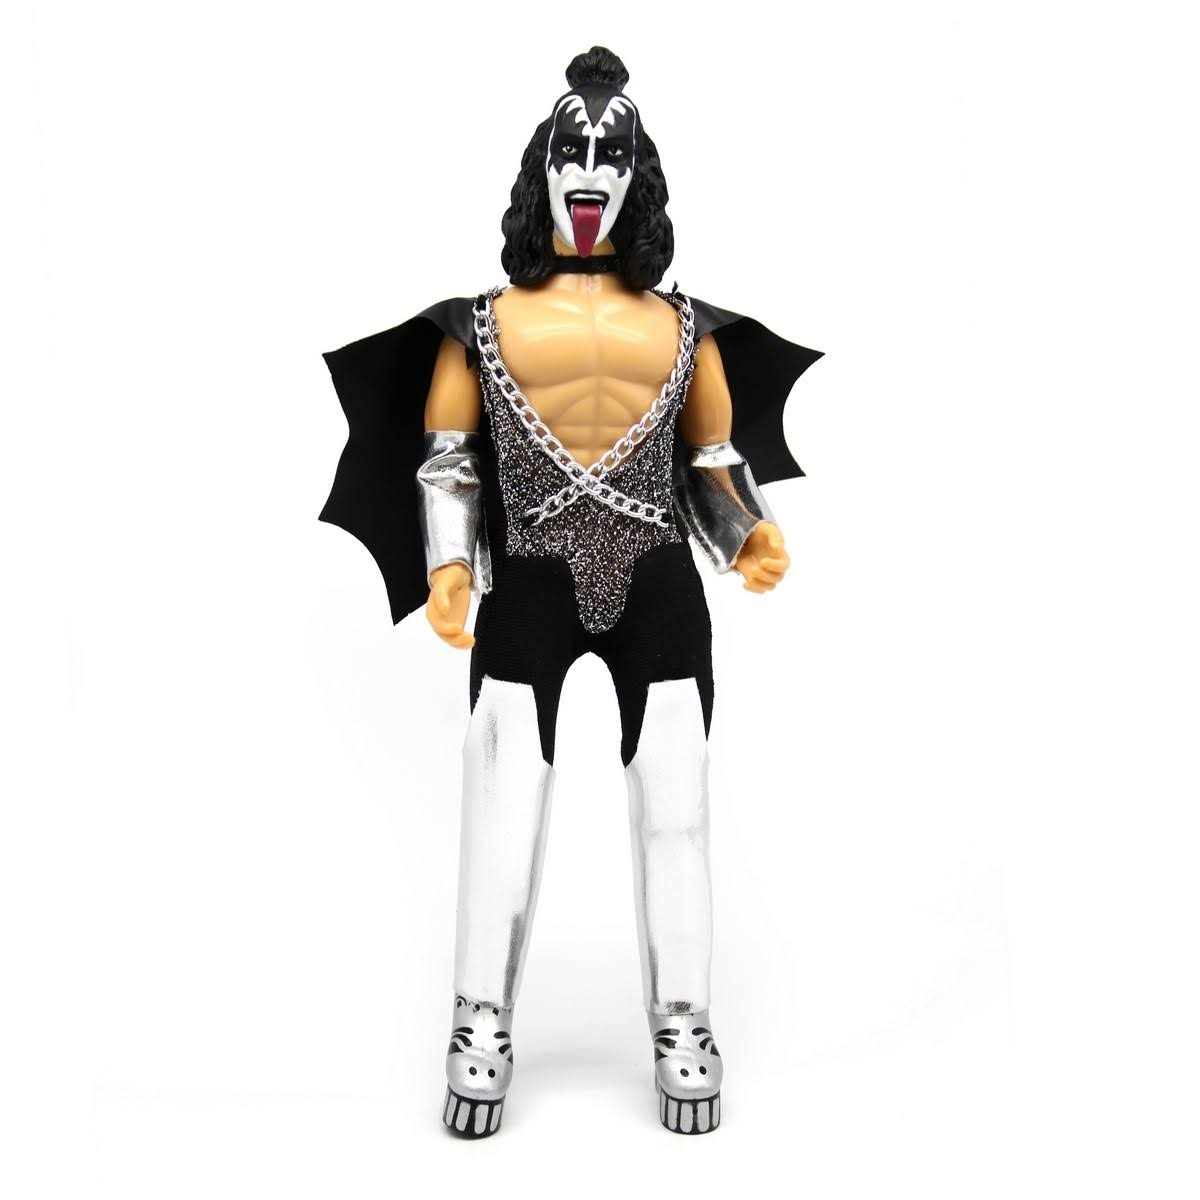 Mego 8 inch Action Figure Kiss - Gene Simmons (The Demon)